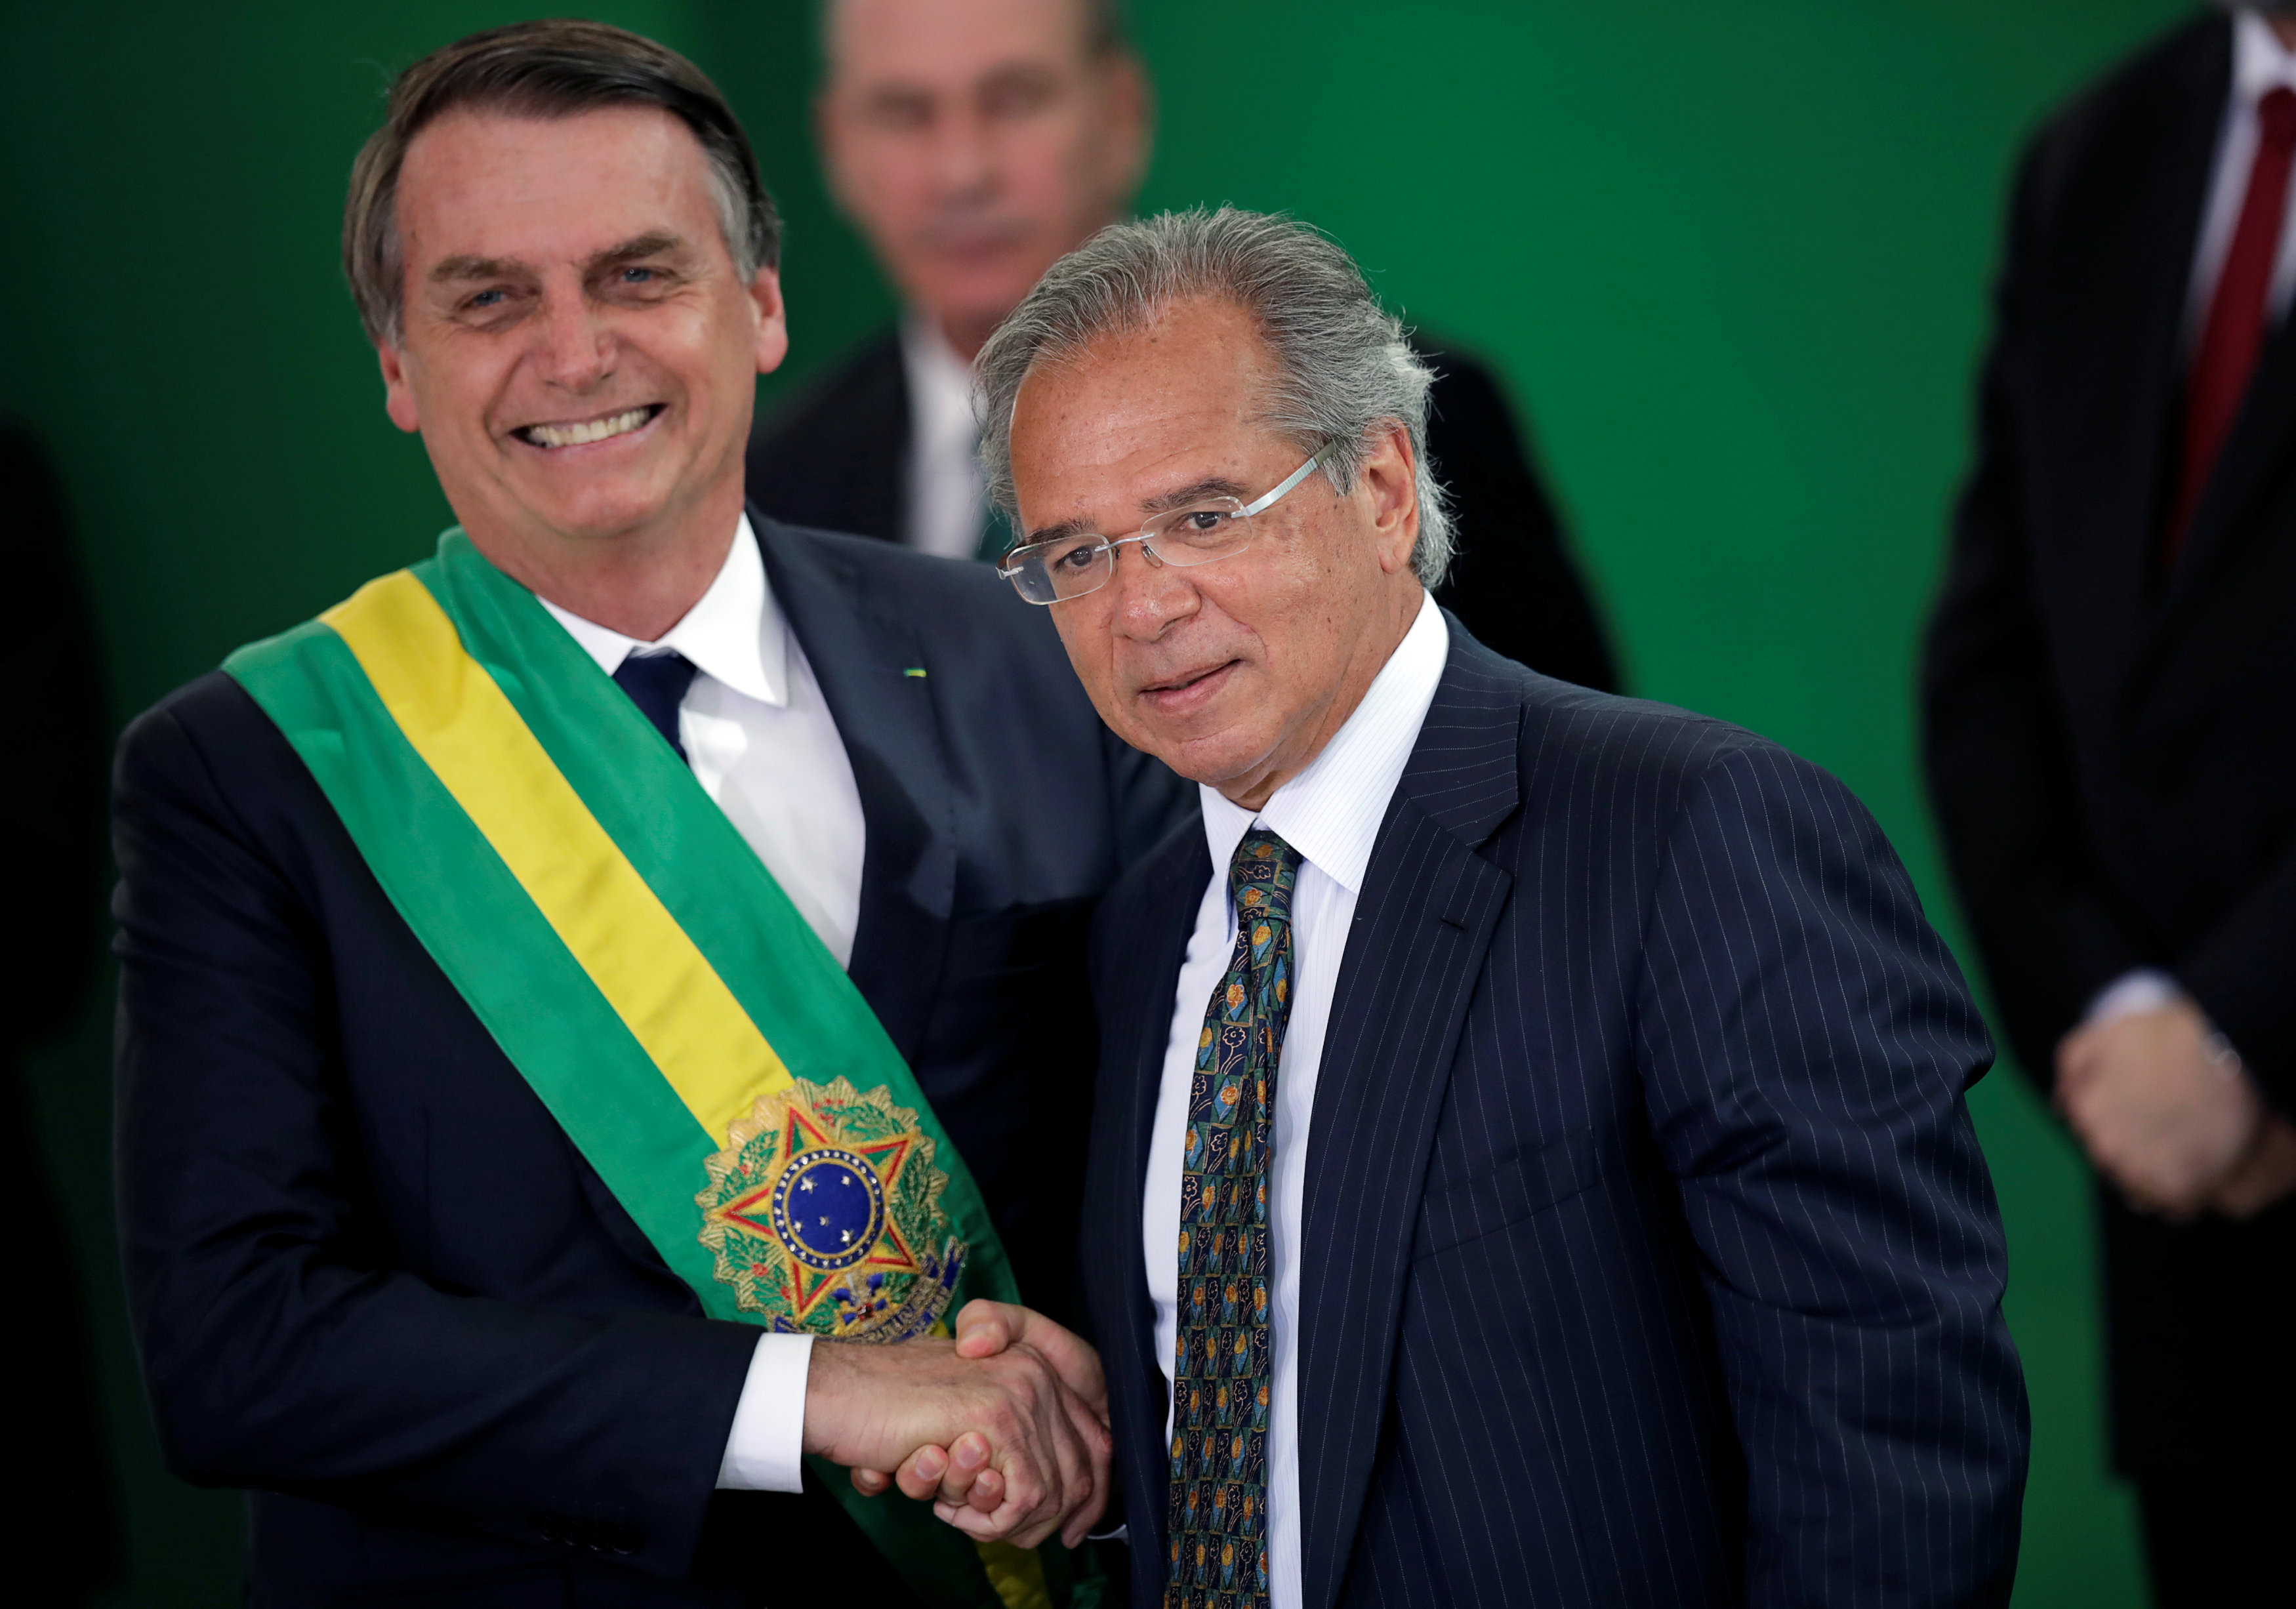 Brazil's new President Jair Bolsonaro shakes hands with PauloGuedes, incoming Brazil's Economy Minister, during a ceremony at the Planalto Palace, in Brasilia, Brazil January 1, 2019. REUTERS/Ueslei Marcelino